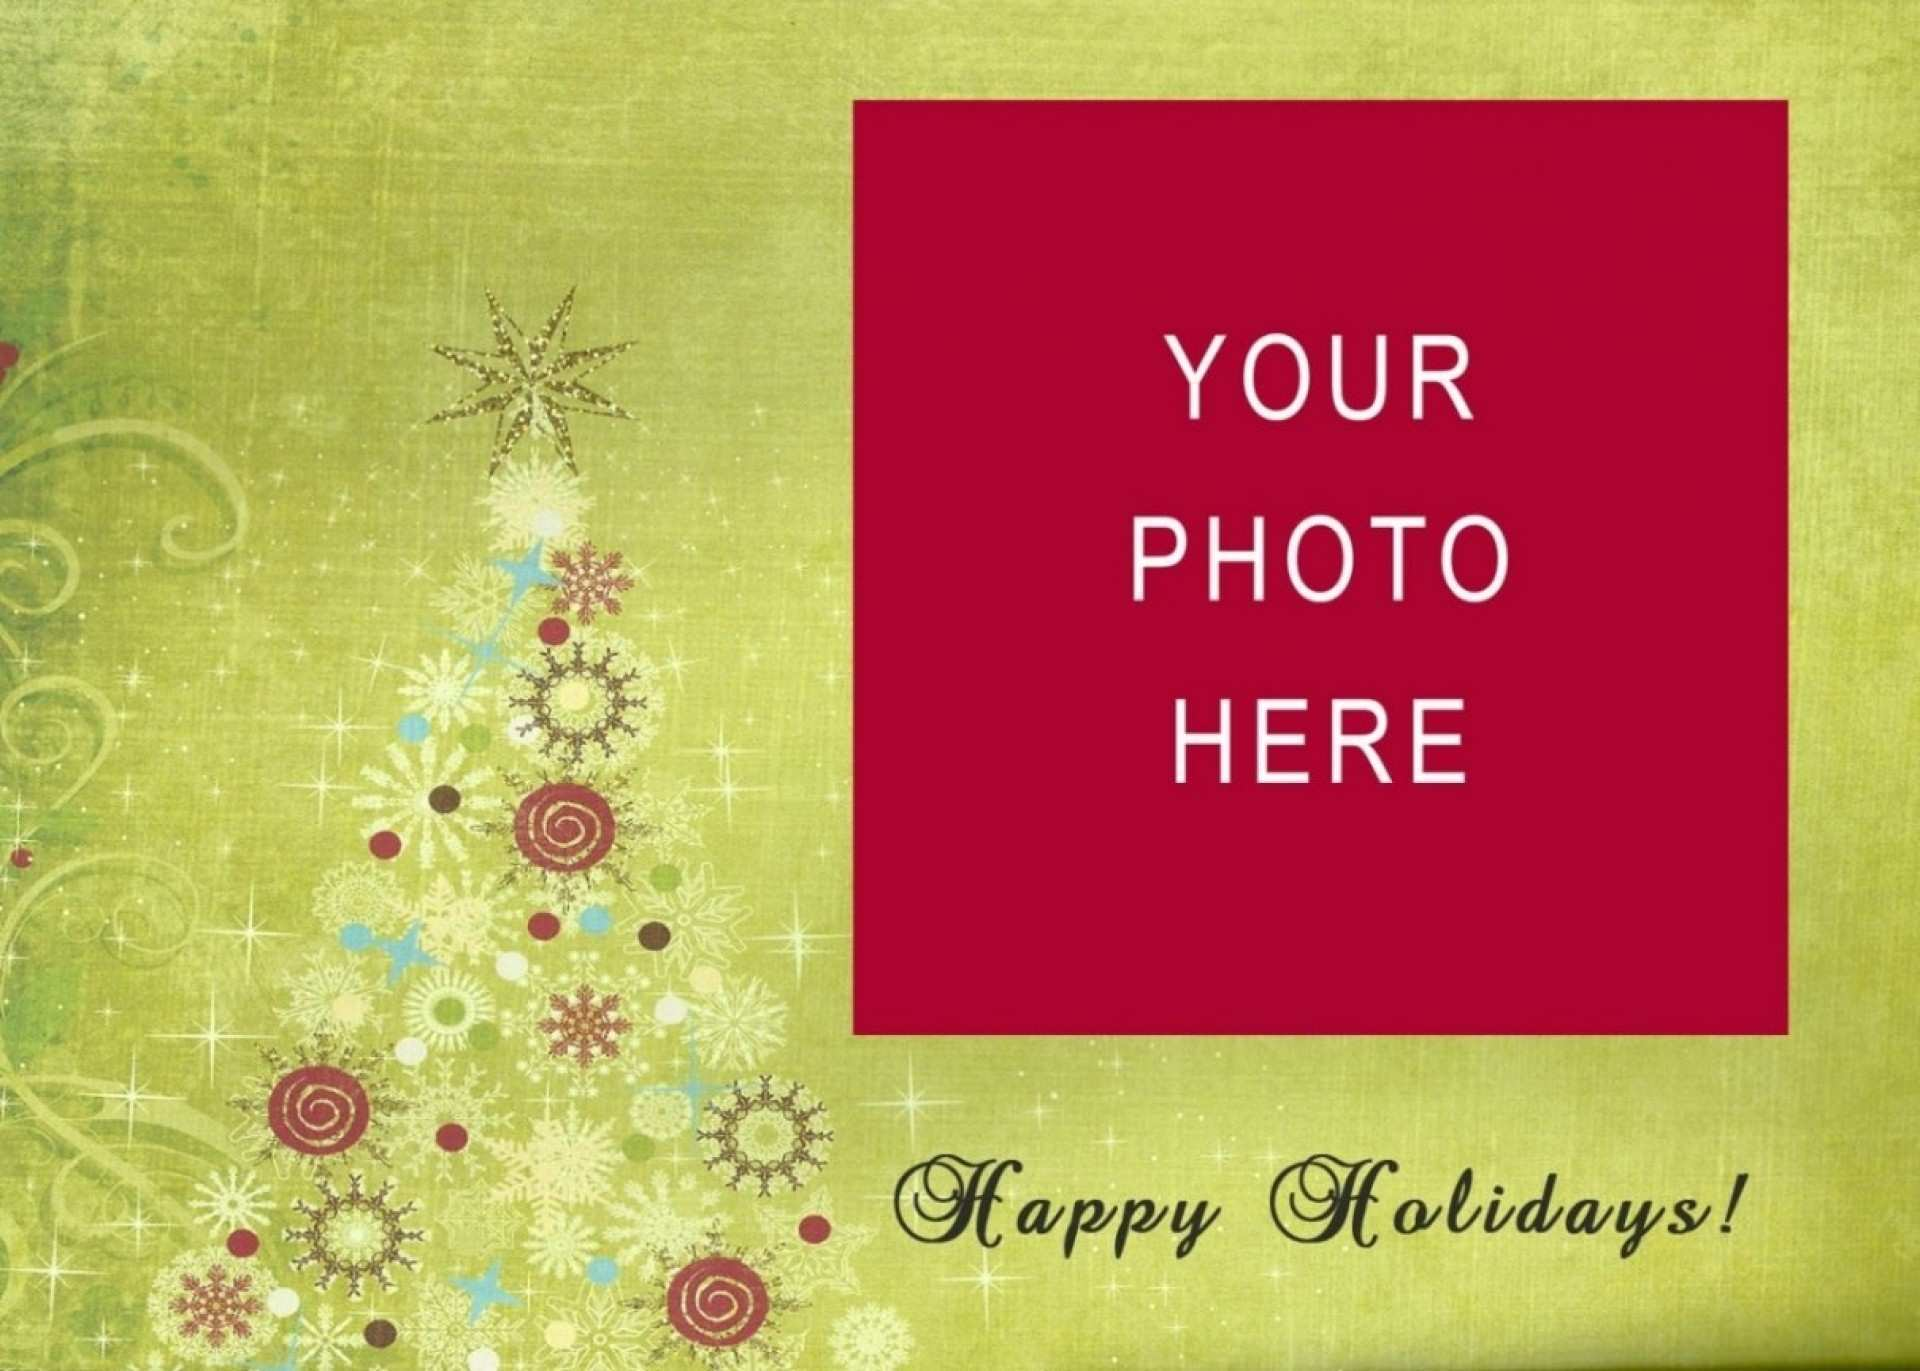 95 Best Christmas Card Templates For Publisher PSD File for Christmas Card Templates For Publisher